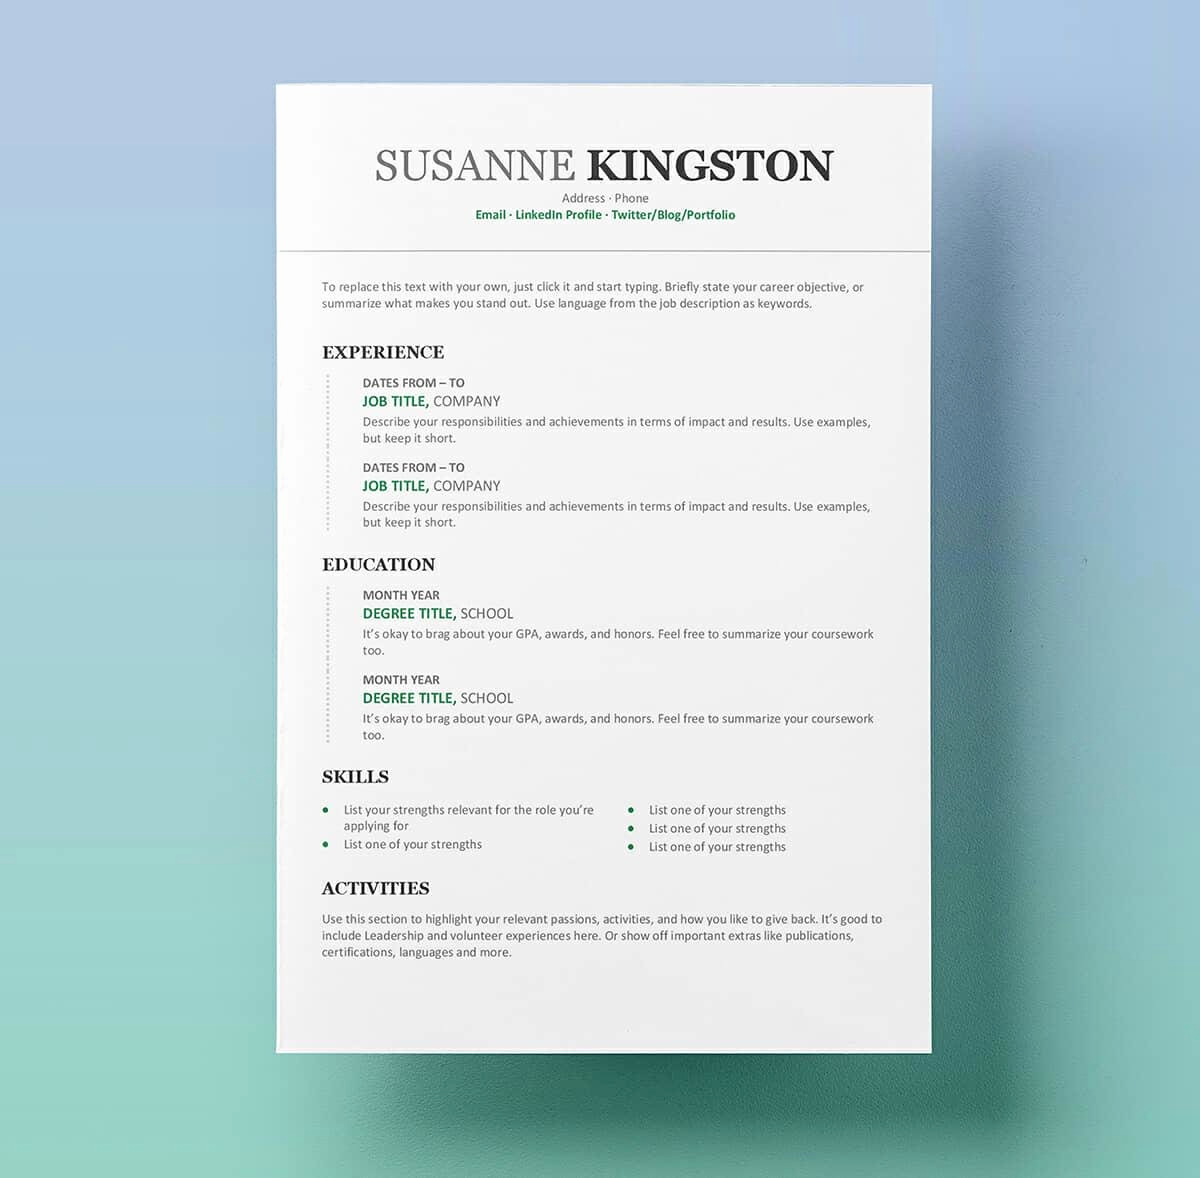 Free Cv Template Word Awesome Resume Templates for Word Free 15 Examples for Download